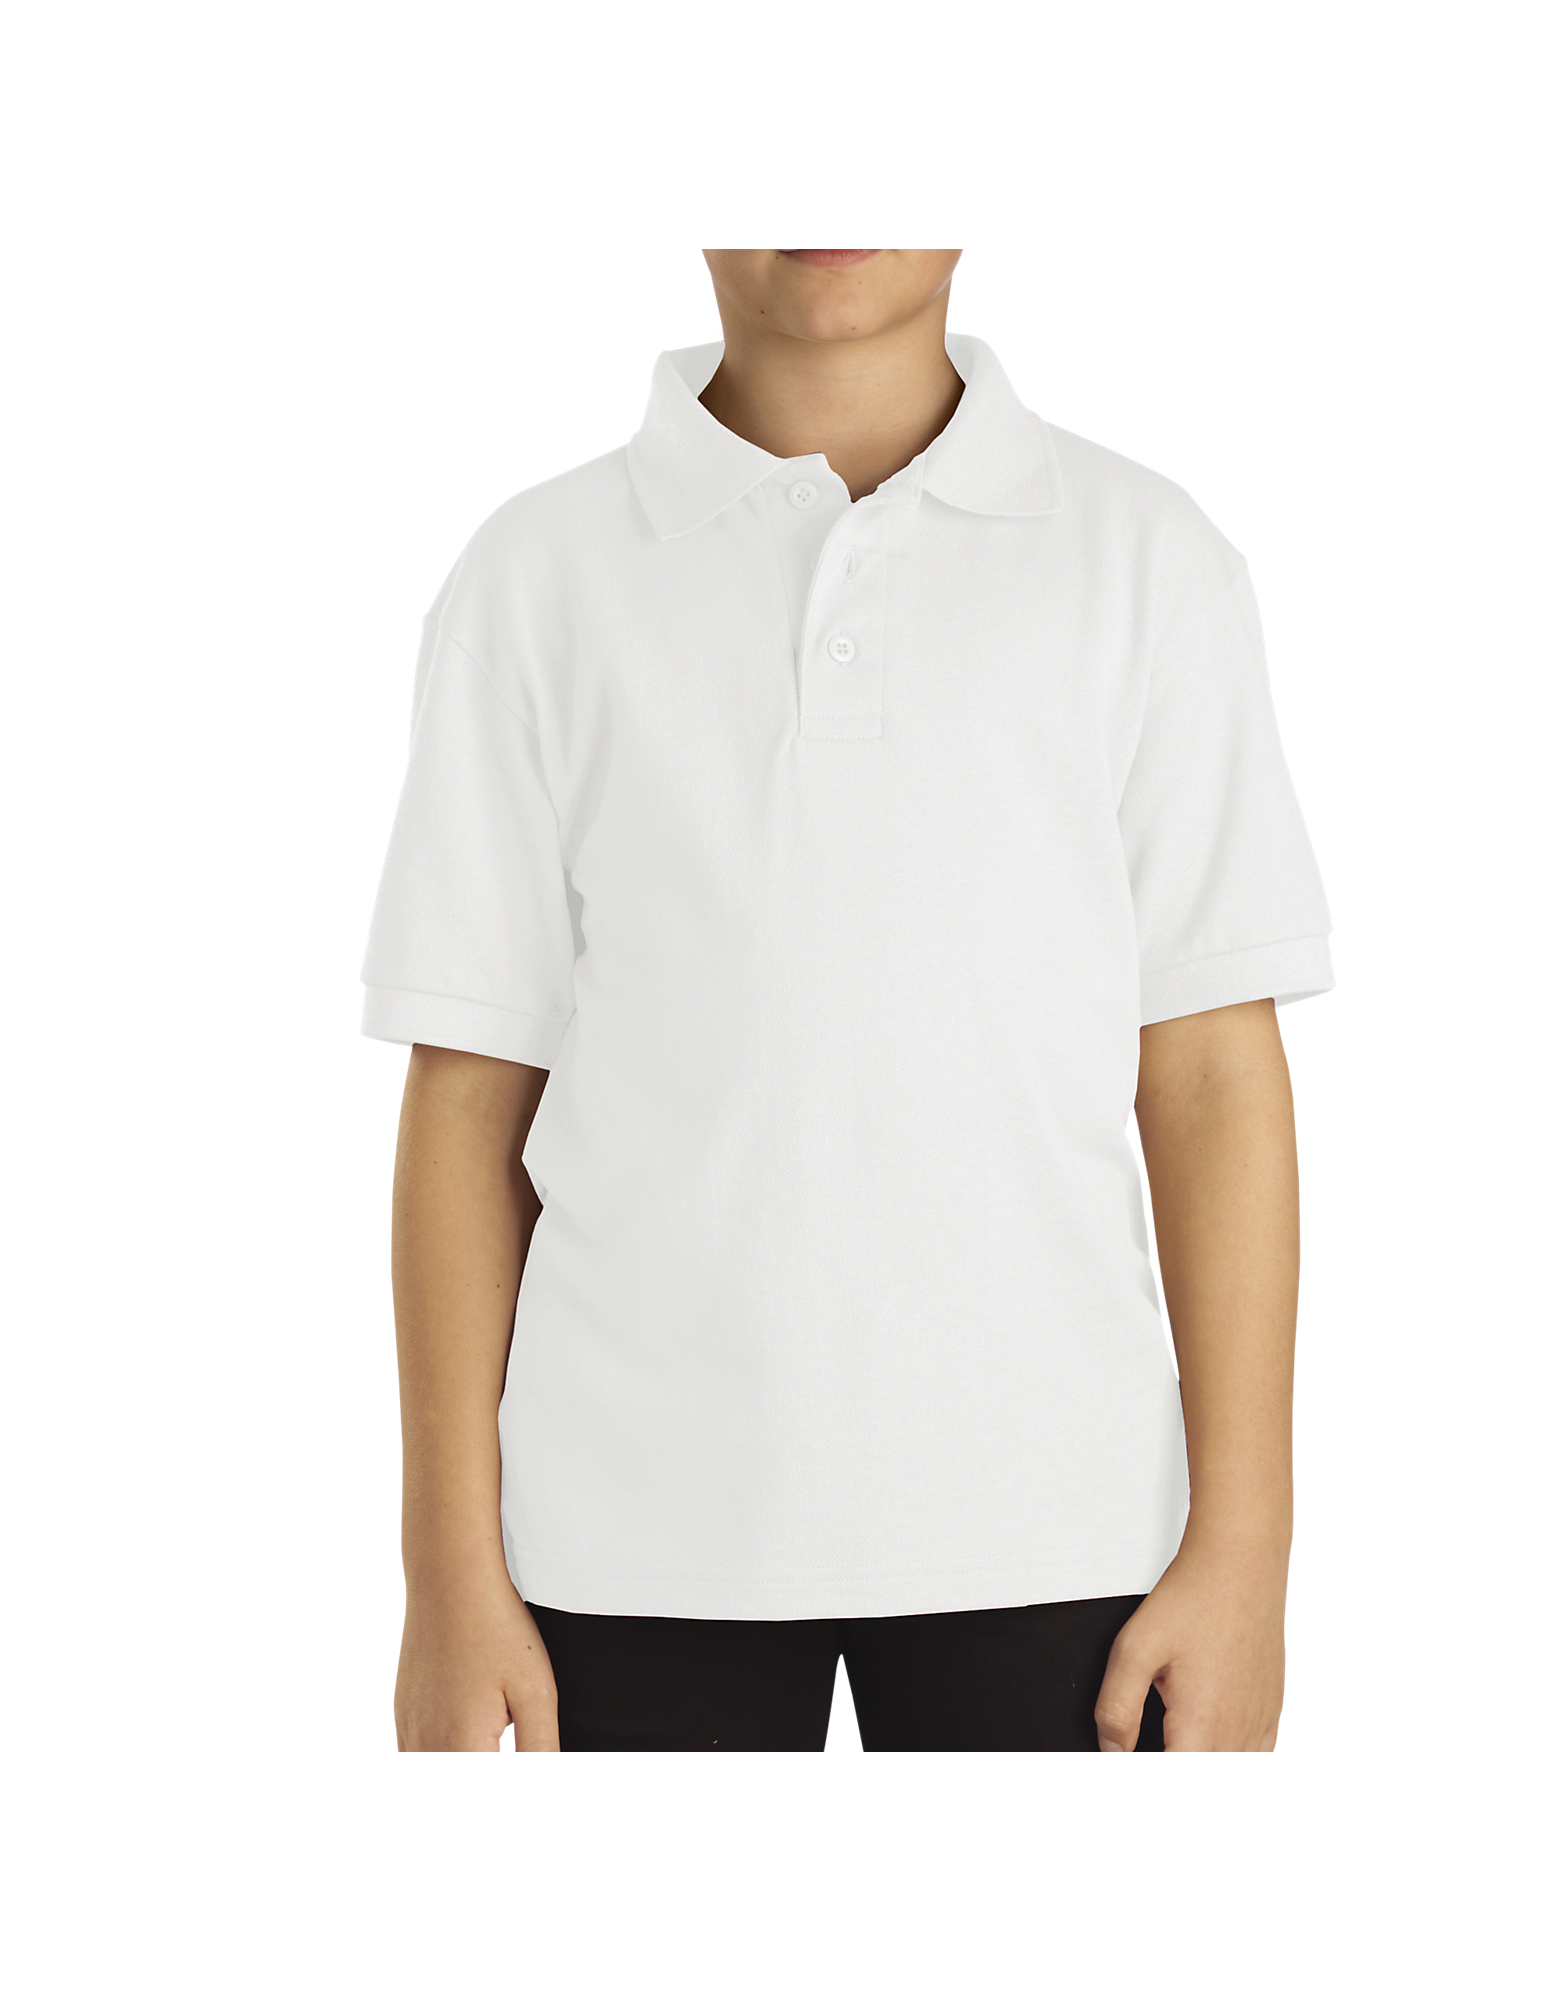 Kids' Short Sleeve Pique Polo Shirt, 4-7 - White (WH)